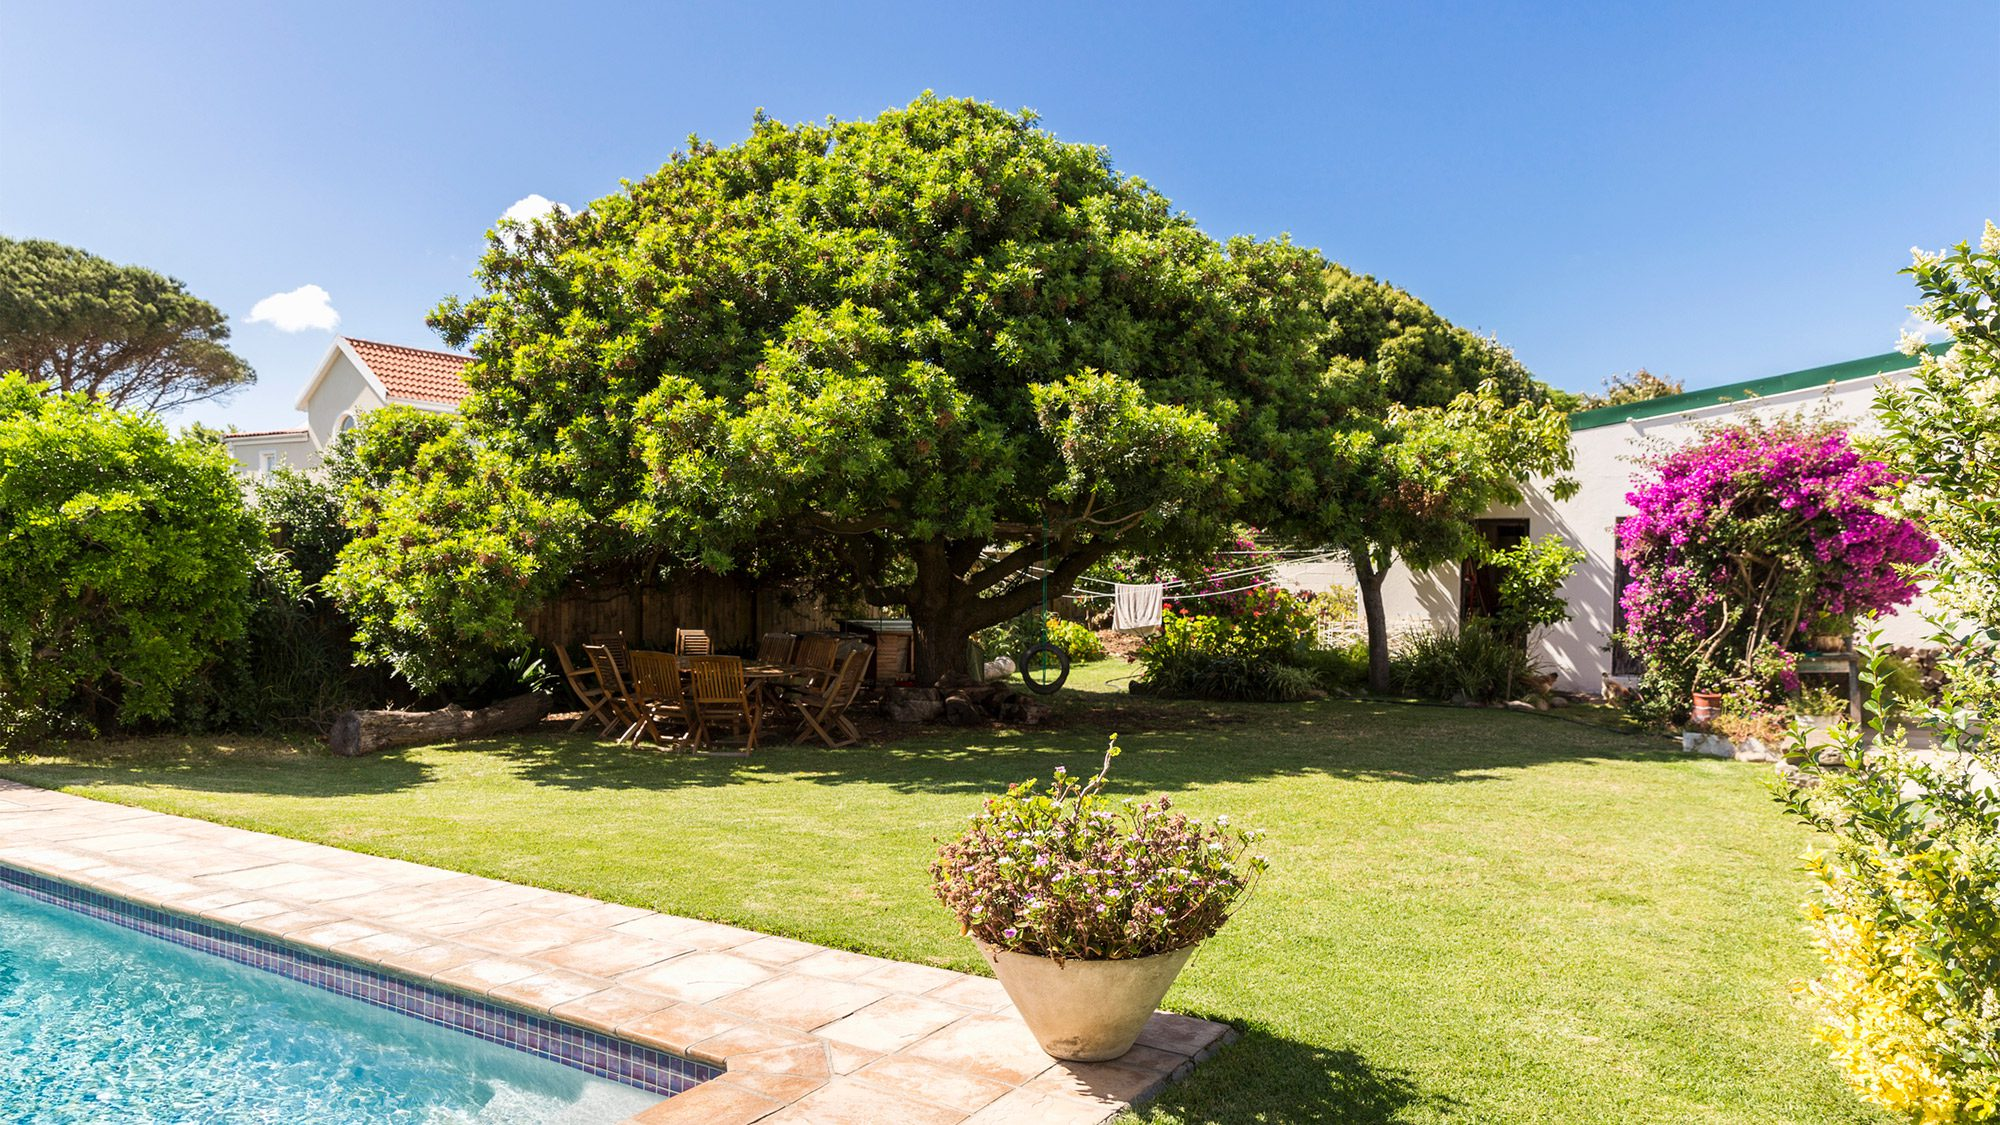 Garden Trees 7 Reasons To Think Twice Before Buying A House With Big Trees